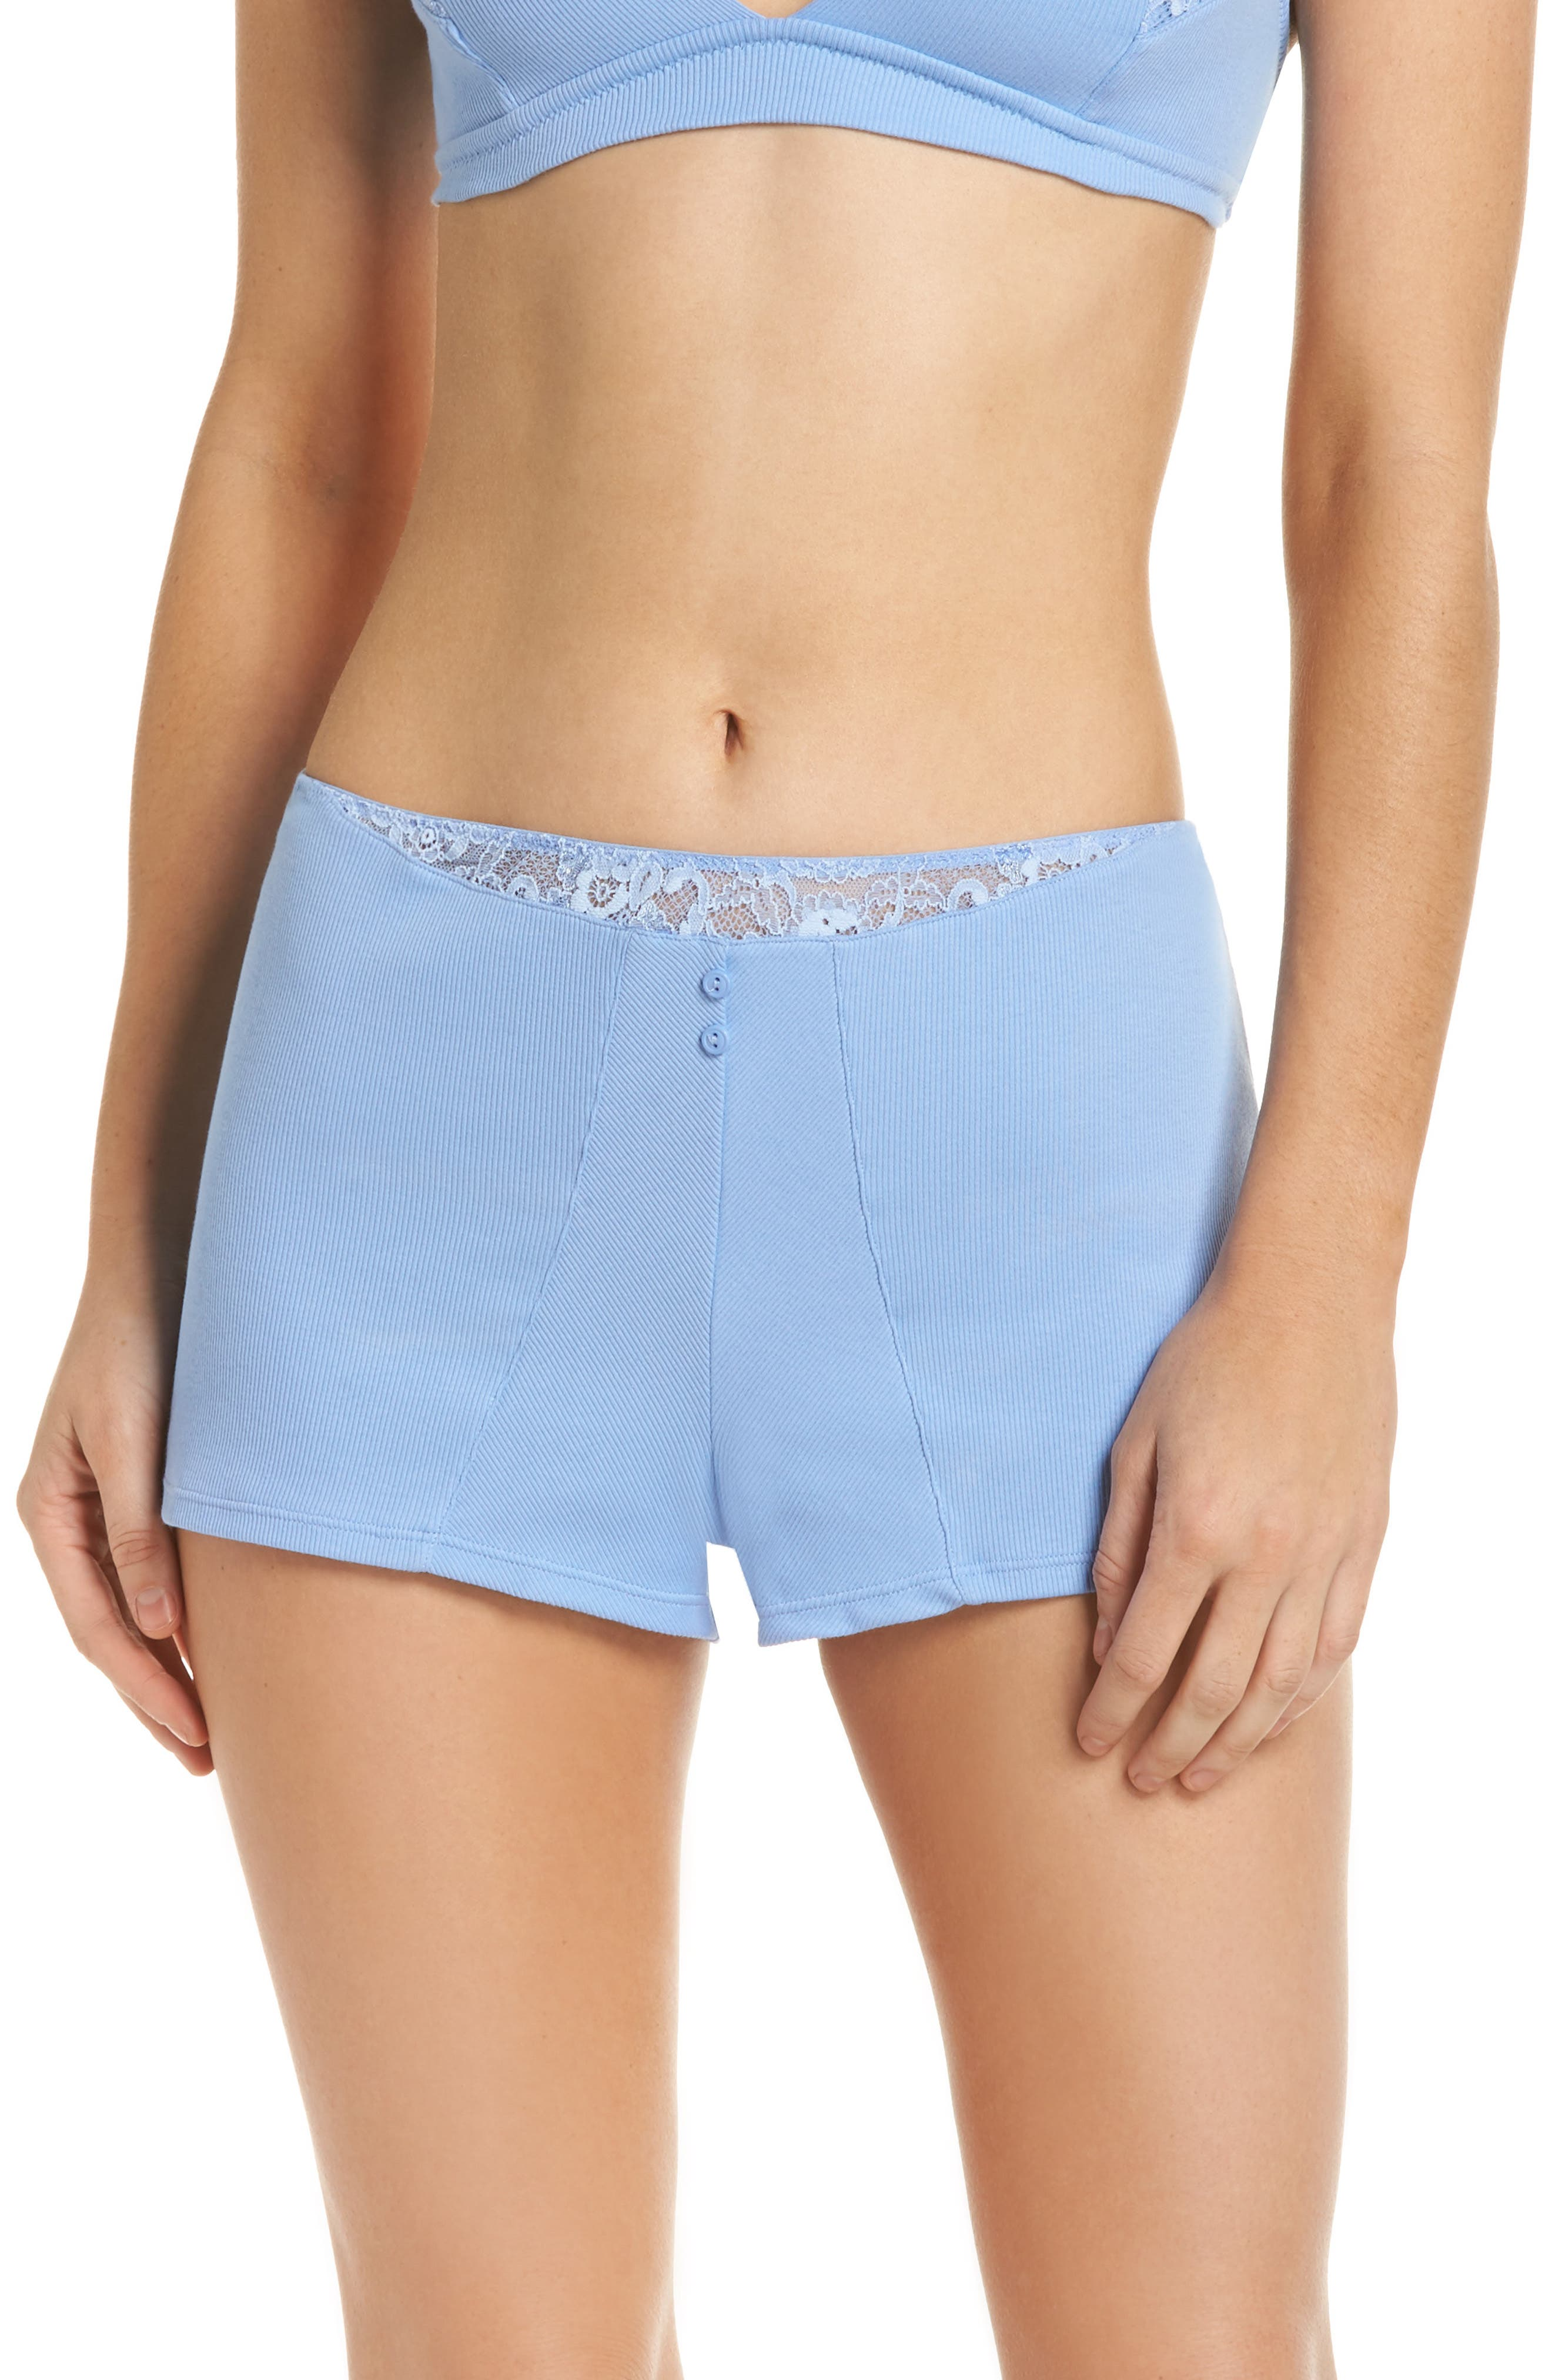 Tap Boyshorts,                         Main,                         color, Periwinkle